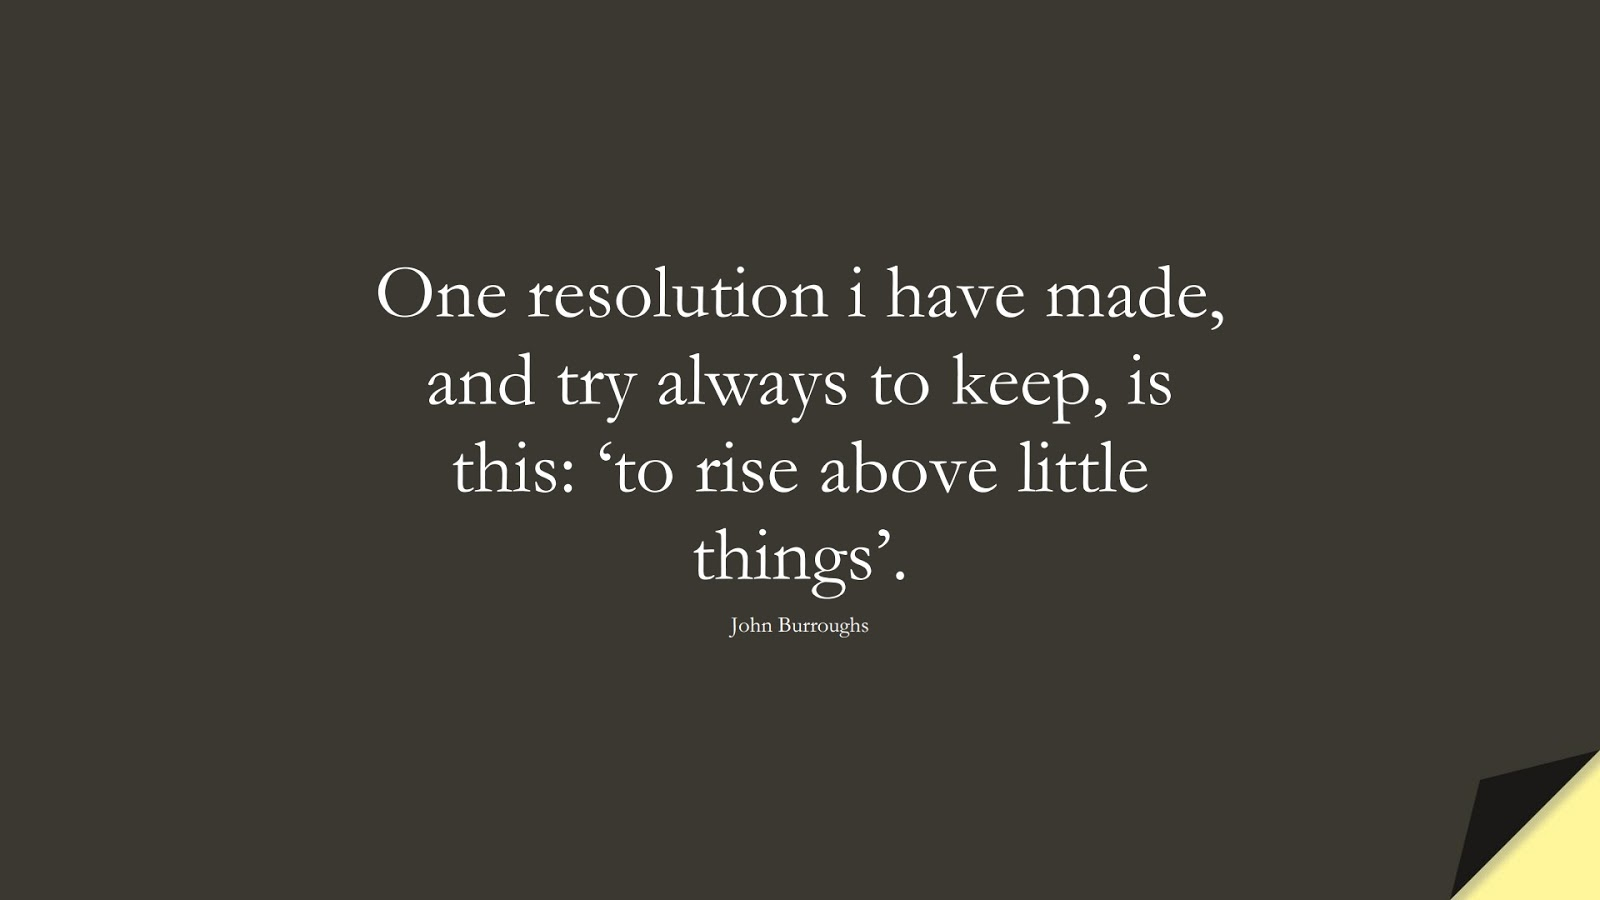 One resolution i have made, and try always to keep, is this: 'to rise above little things'. (John Burroughs);  #CharacterQuotes